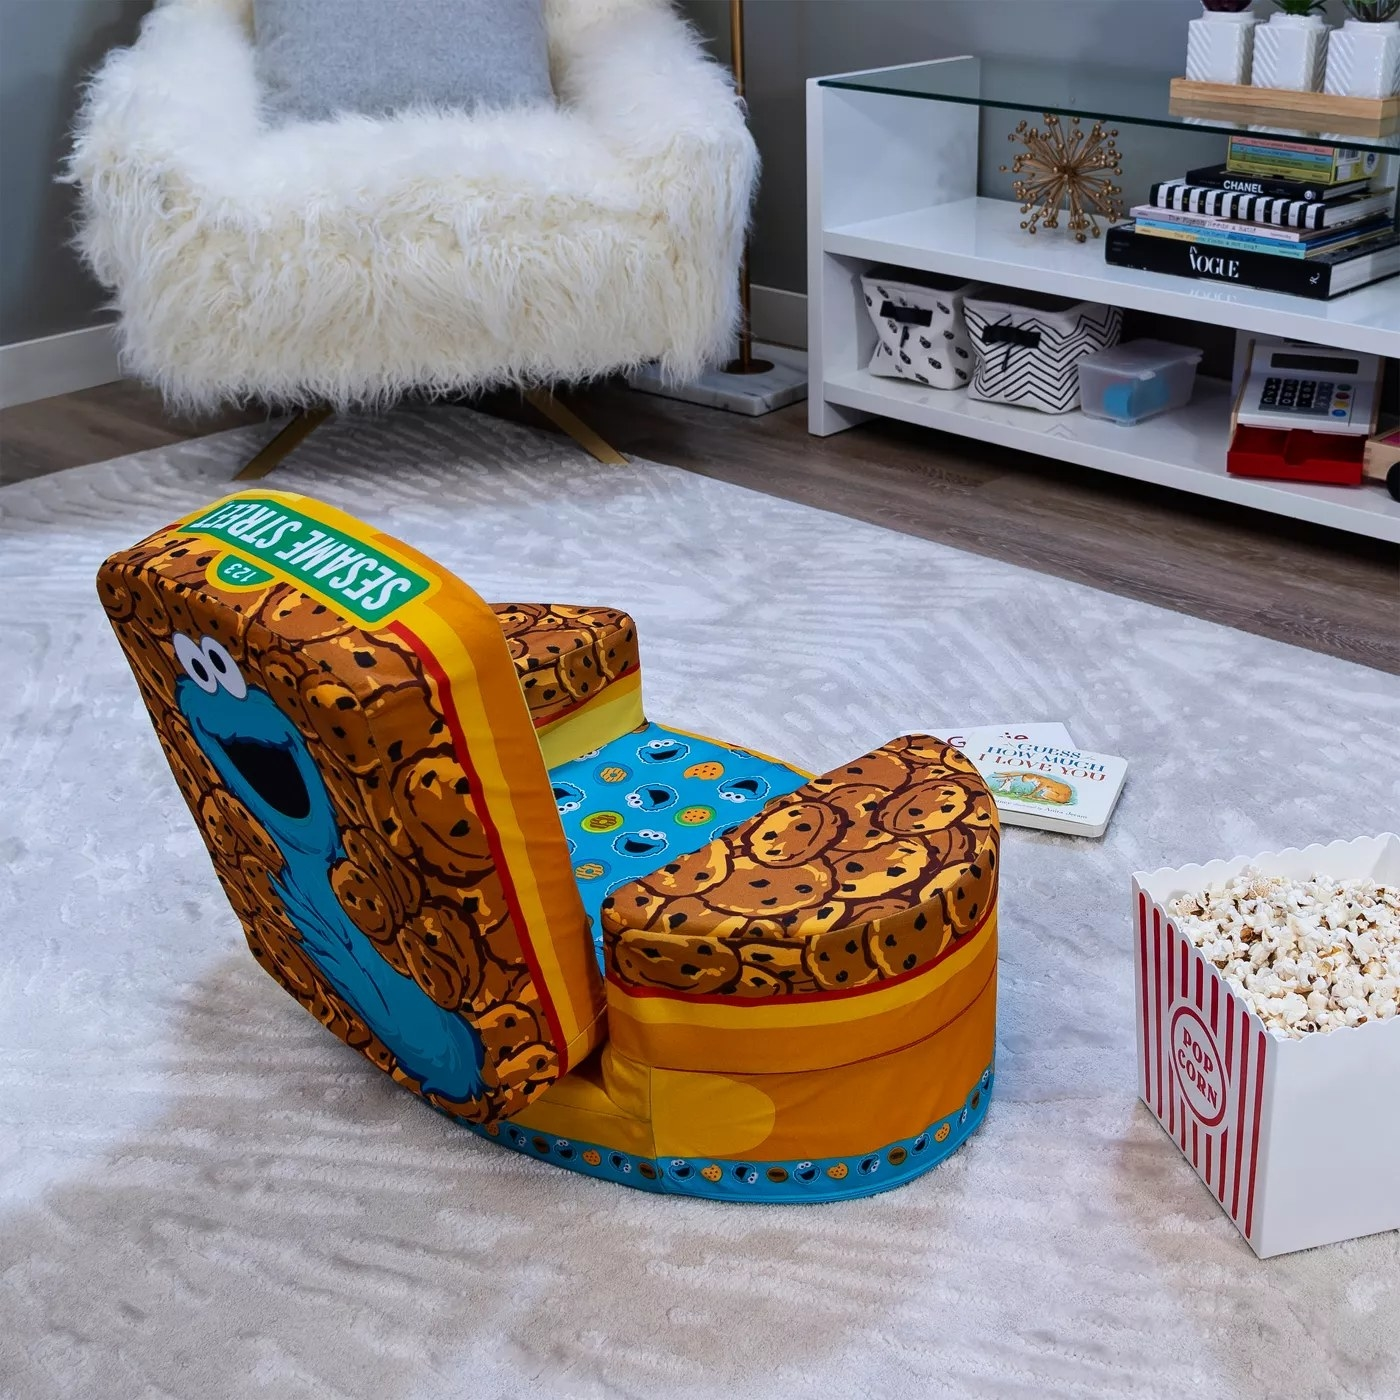 The Cookie Monster chair